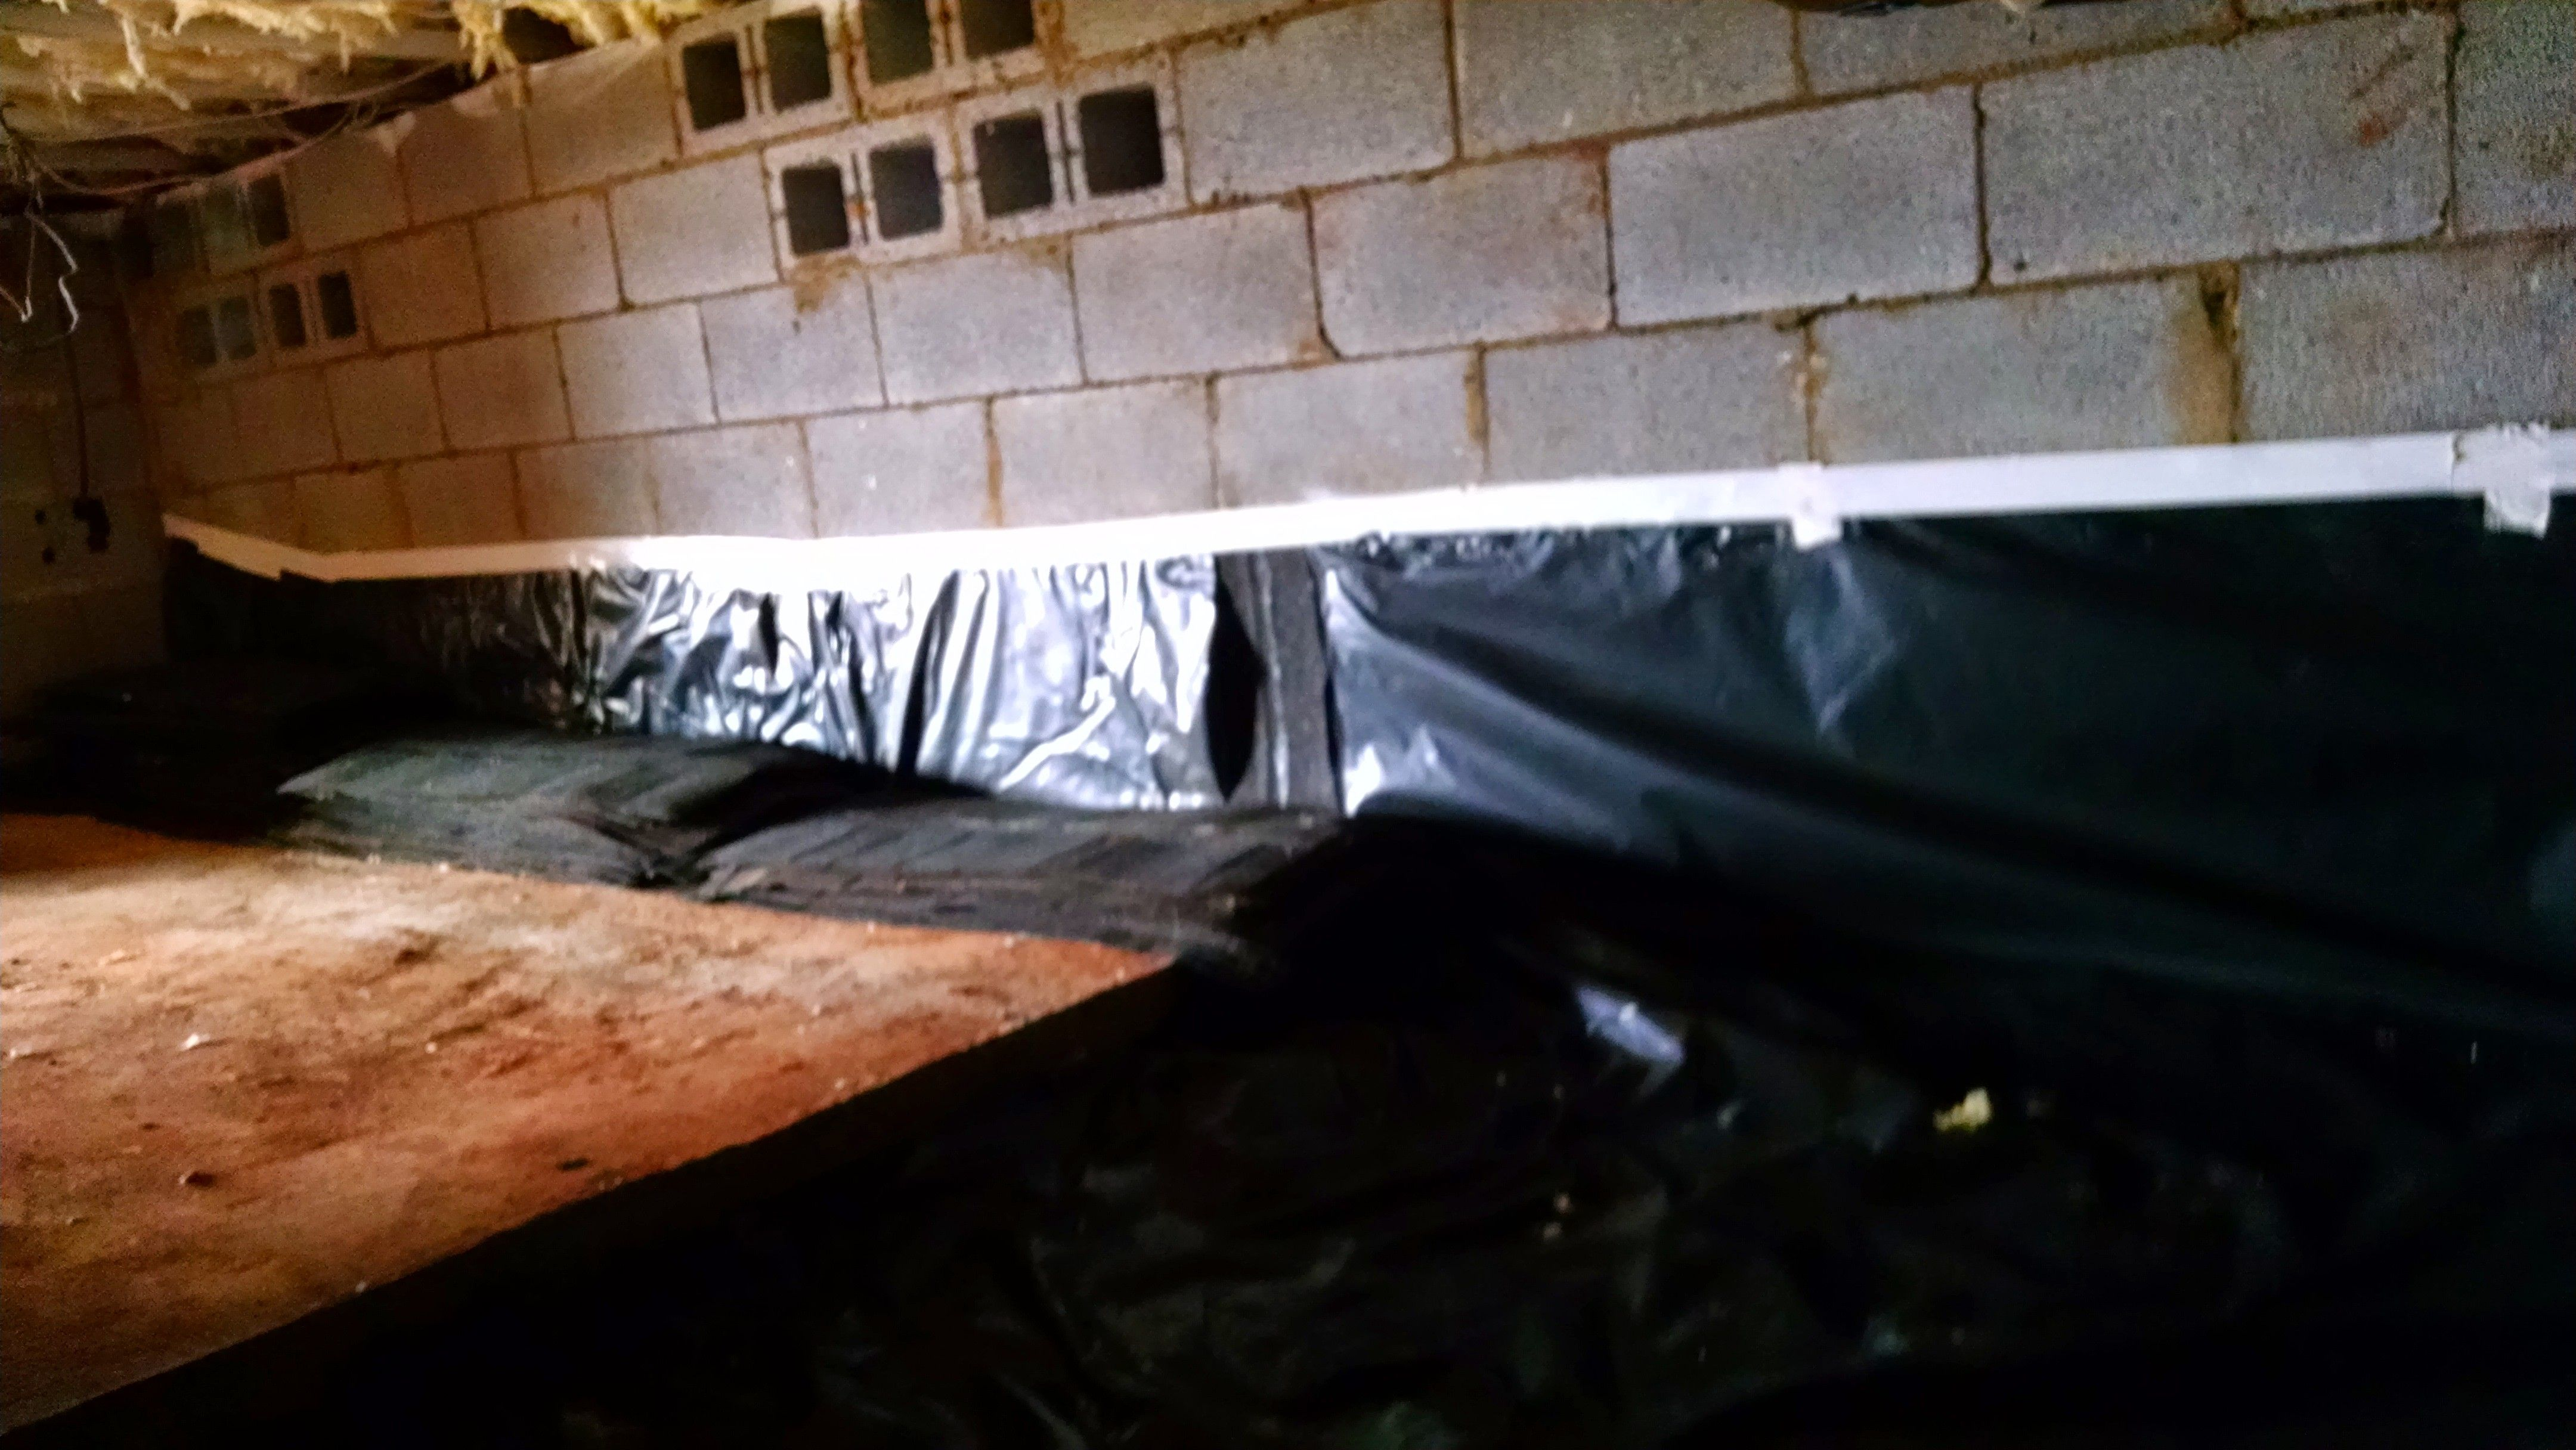 Whether Using 6 Mils Or 20 Mils Any Vapor Barrier Is Better Than None When Installing A Vapor Barrier In A Cr Crawl Space Encapsulation Crawl Space Vapor Barrier Fiberglass Insulation